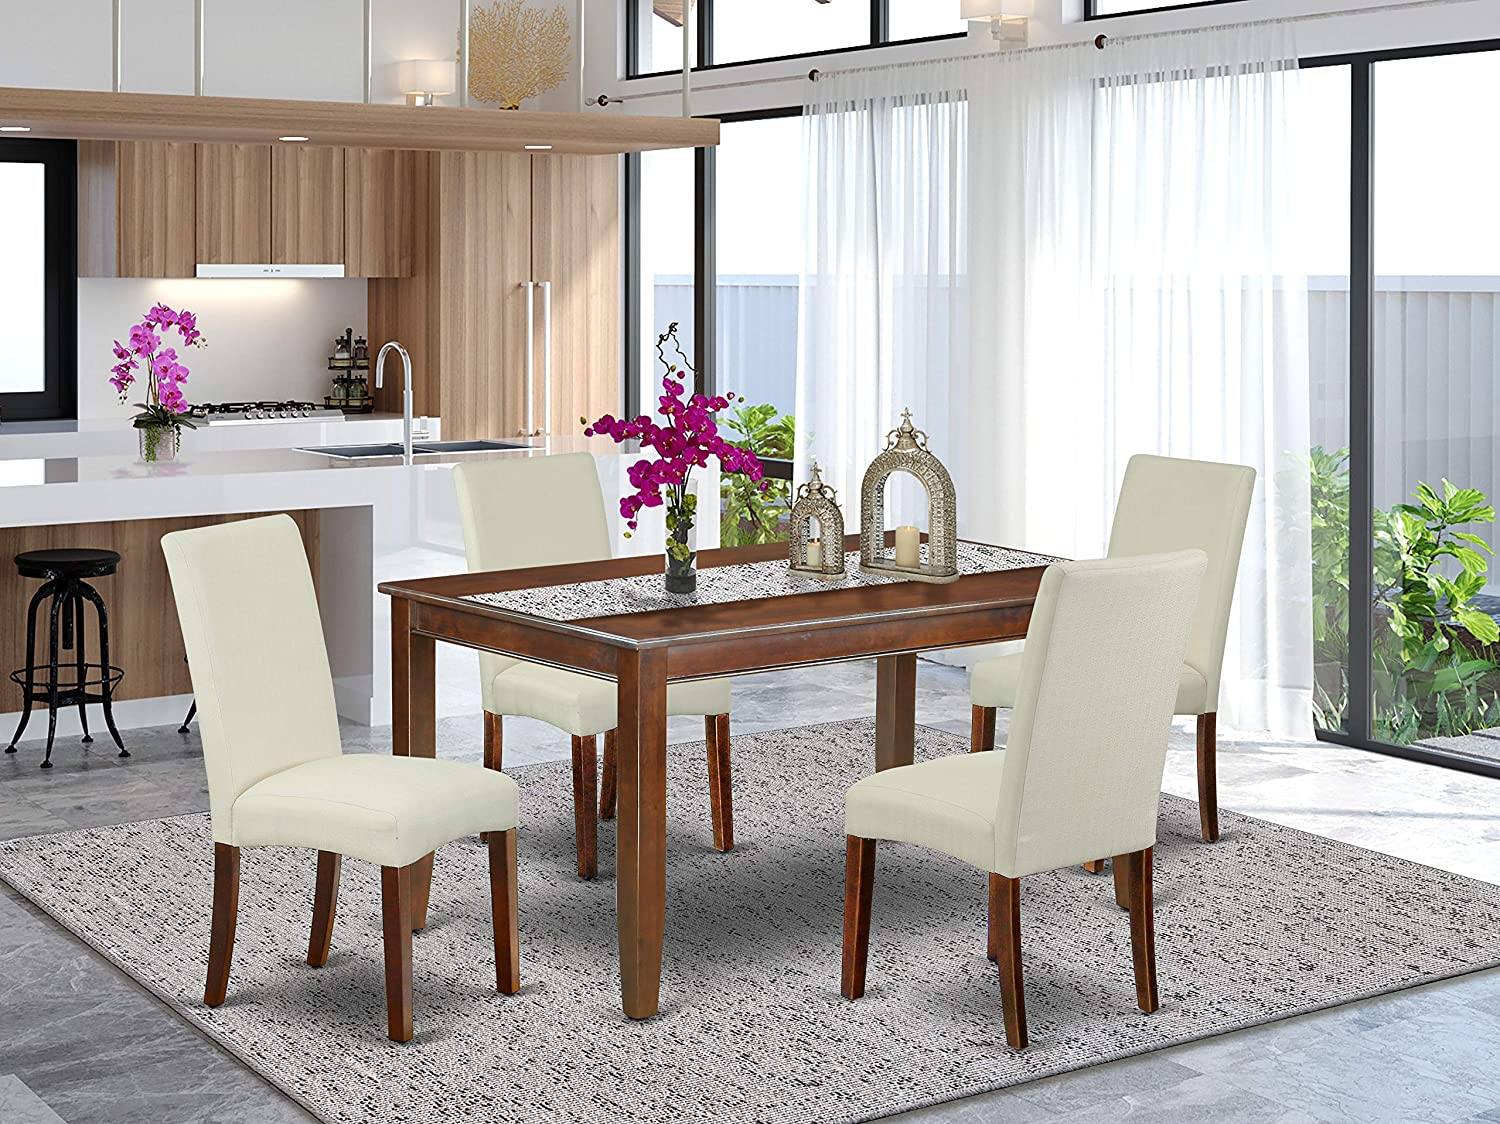 Amazon Com East West Furniture 5pc Rectangle 60 Inch Dining Table And Four Parson Chair With Mahogany Finish Leg And Linen Fabric Cream Color 5 Furniture Decor